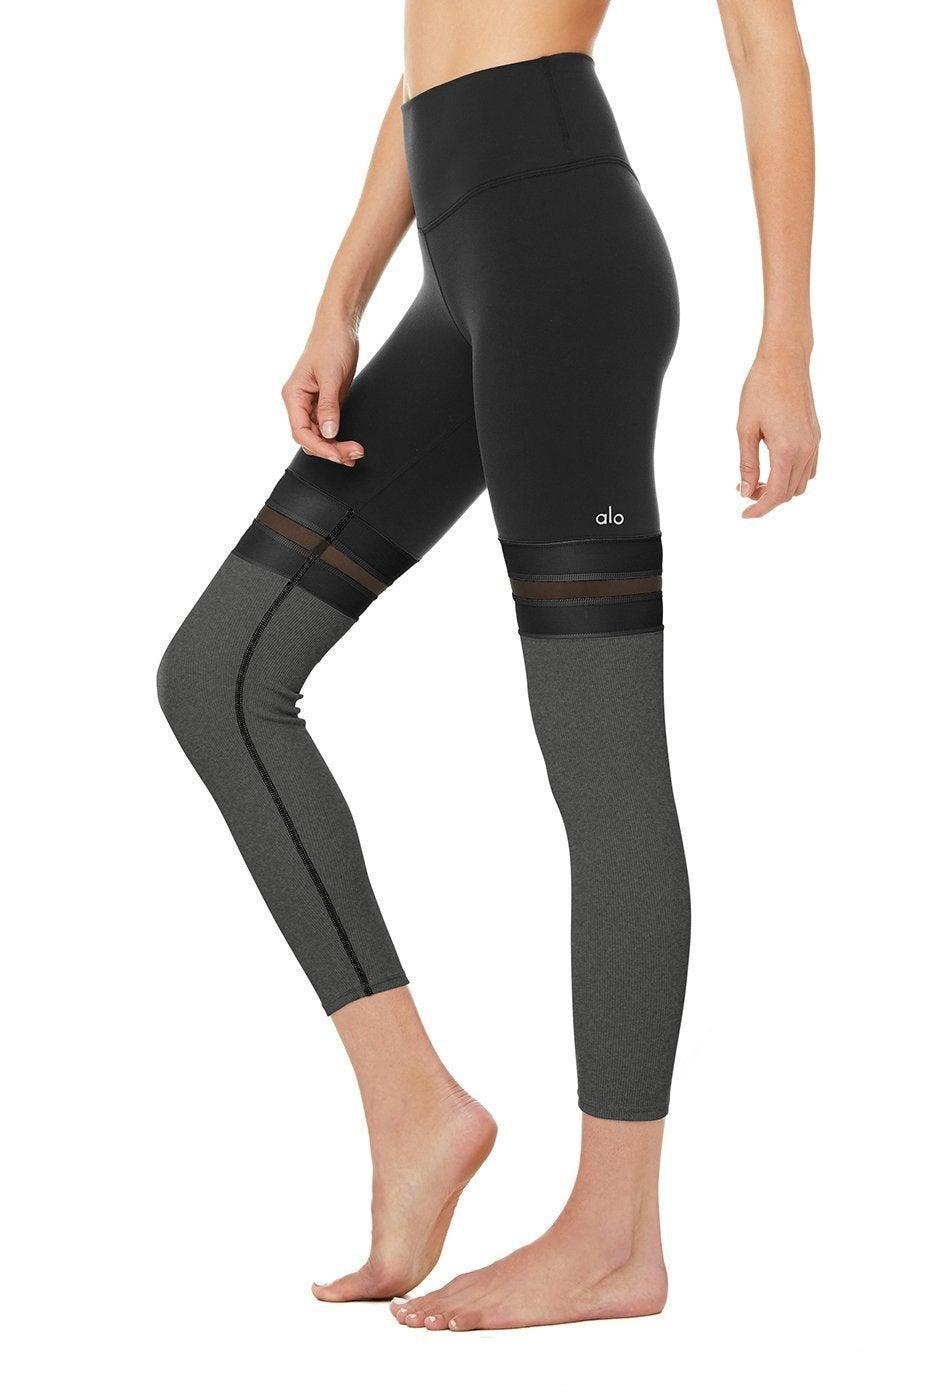 """<h3>Alo Player High Waist 7/8 Leggings</h3><br><strong><em>Overall Score: 4.0<br></em></strong><br><strong>Stretch: 4.5</strong><br>These were super stretchy and felt great on my body. The fabric wasn't super thick, so it was pretty breathable and moveable. <br><strong><br>Sweat wicking: 4</strong>.<strong>0</strong><br>Not the best, but also definitely not the worst. Because I prefer more techy fabrics for intense cardio, I'll probably reserve these for more low-impact workouts, like pilates (or brunch). While the nylon/spandex blend felt very cozy and soft, this style isn't the sort of legging that has the smooth, moisture-wicking sheen that performance fabrics do. <br><br><em>— Karina</em><br><br><strong>Alo Yoga</strong> 7/8 Player Leggings, $, available at <a href=""""https://go.skimresources.com/?id=30283X879131&url=https%3A%2F%2Fwww.aloyoga.com%2Fproducts%2Fw5821r-7-8-player-legging-black-charcoal-heather"""" rel=""""nofollow noopener"""" target=""""_blank"""" data-ylk=""""slk:Alo Yoga"""" class=""""link rapid-noclick-resp"""">Alo Yoga</a>"""